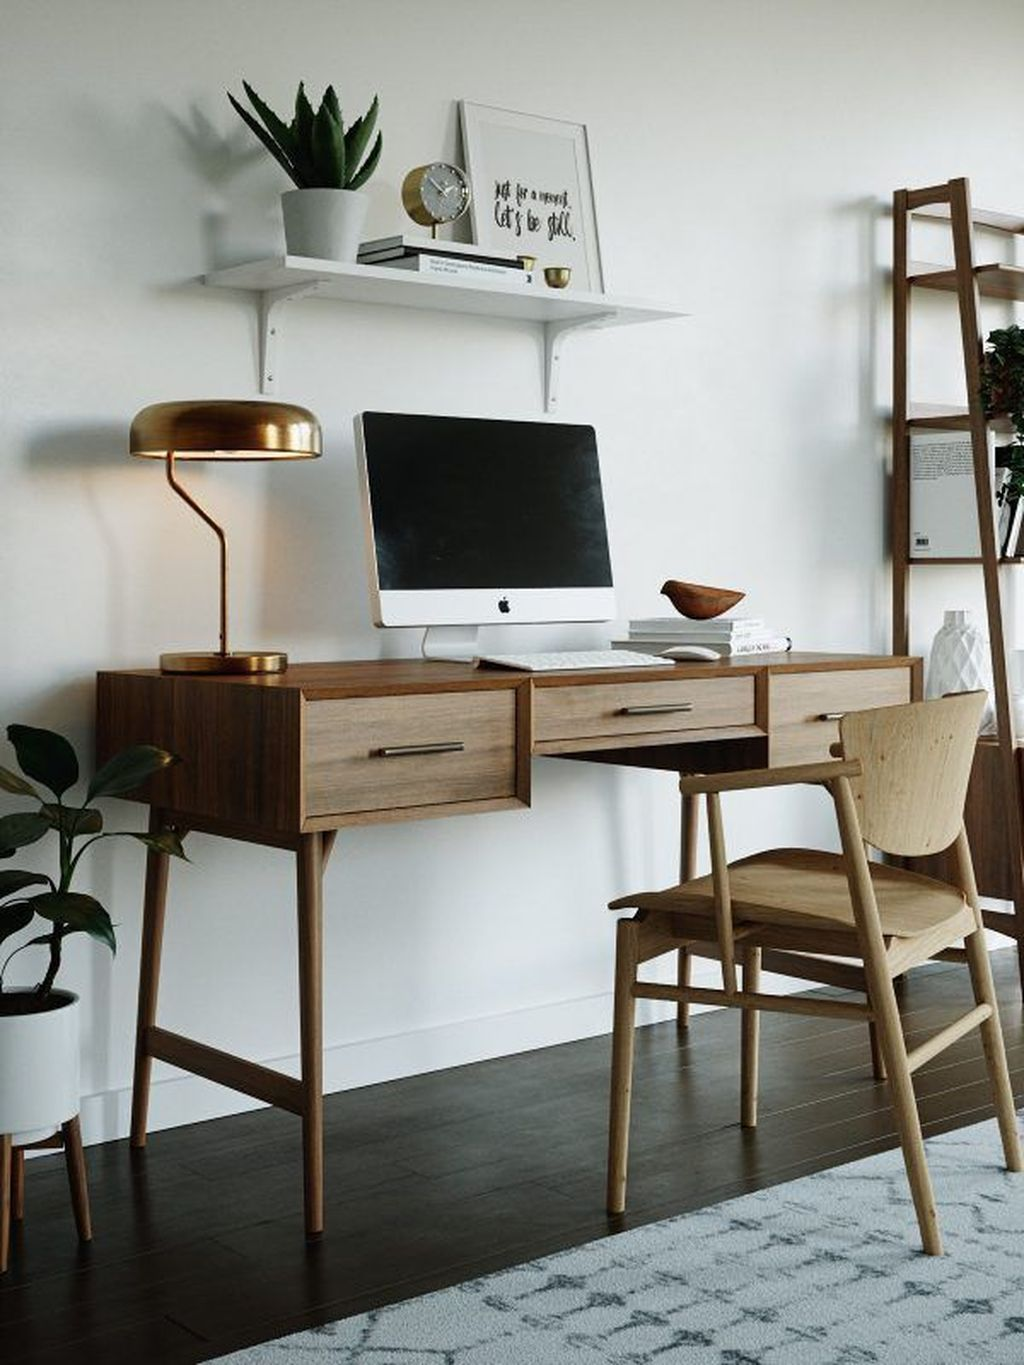 30 Admirable Modern Home Office Design Ideas That You Like Pimphomee Home Office Design Feminine Home Offices Office Interior Design